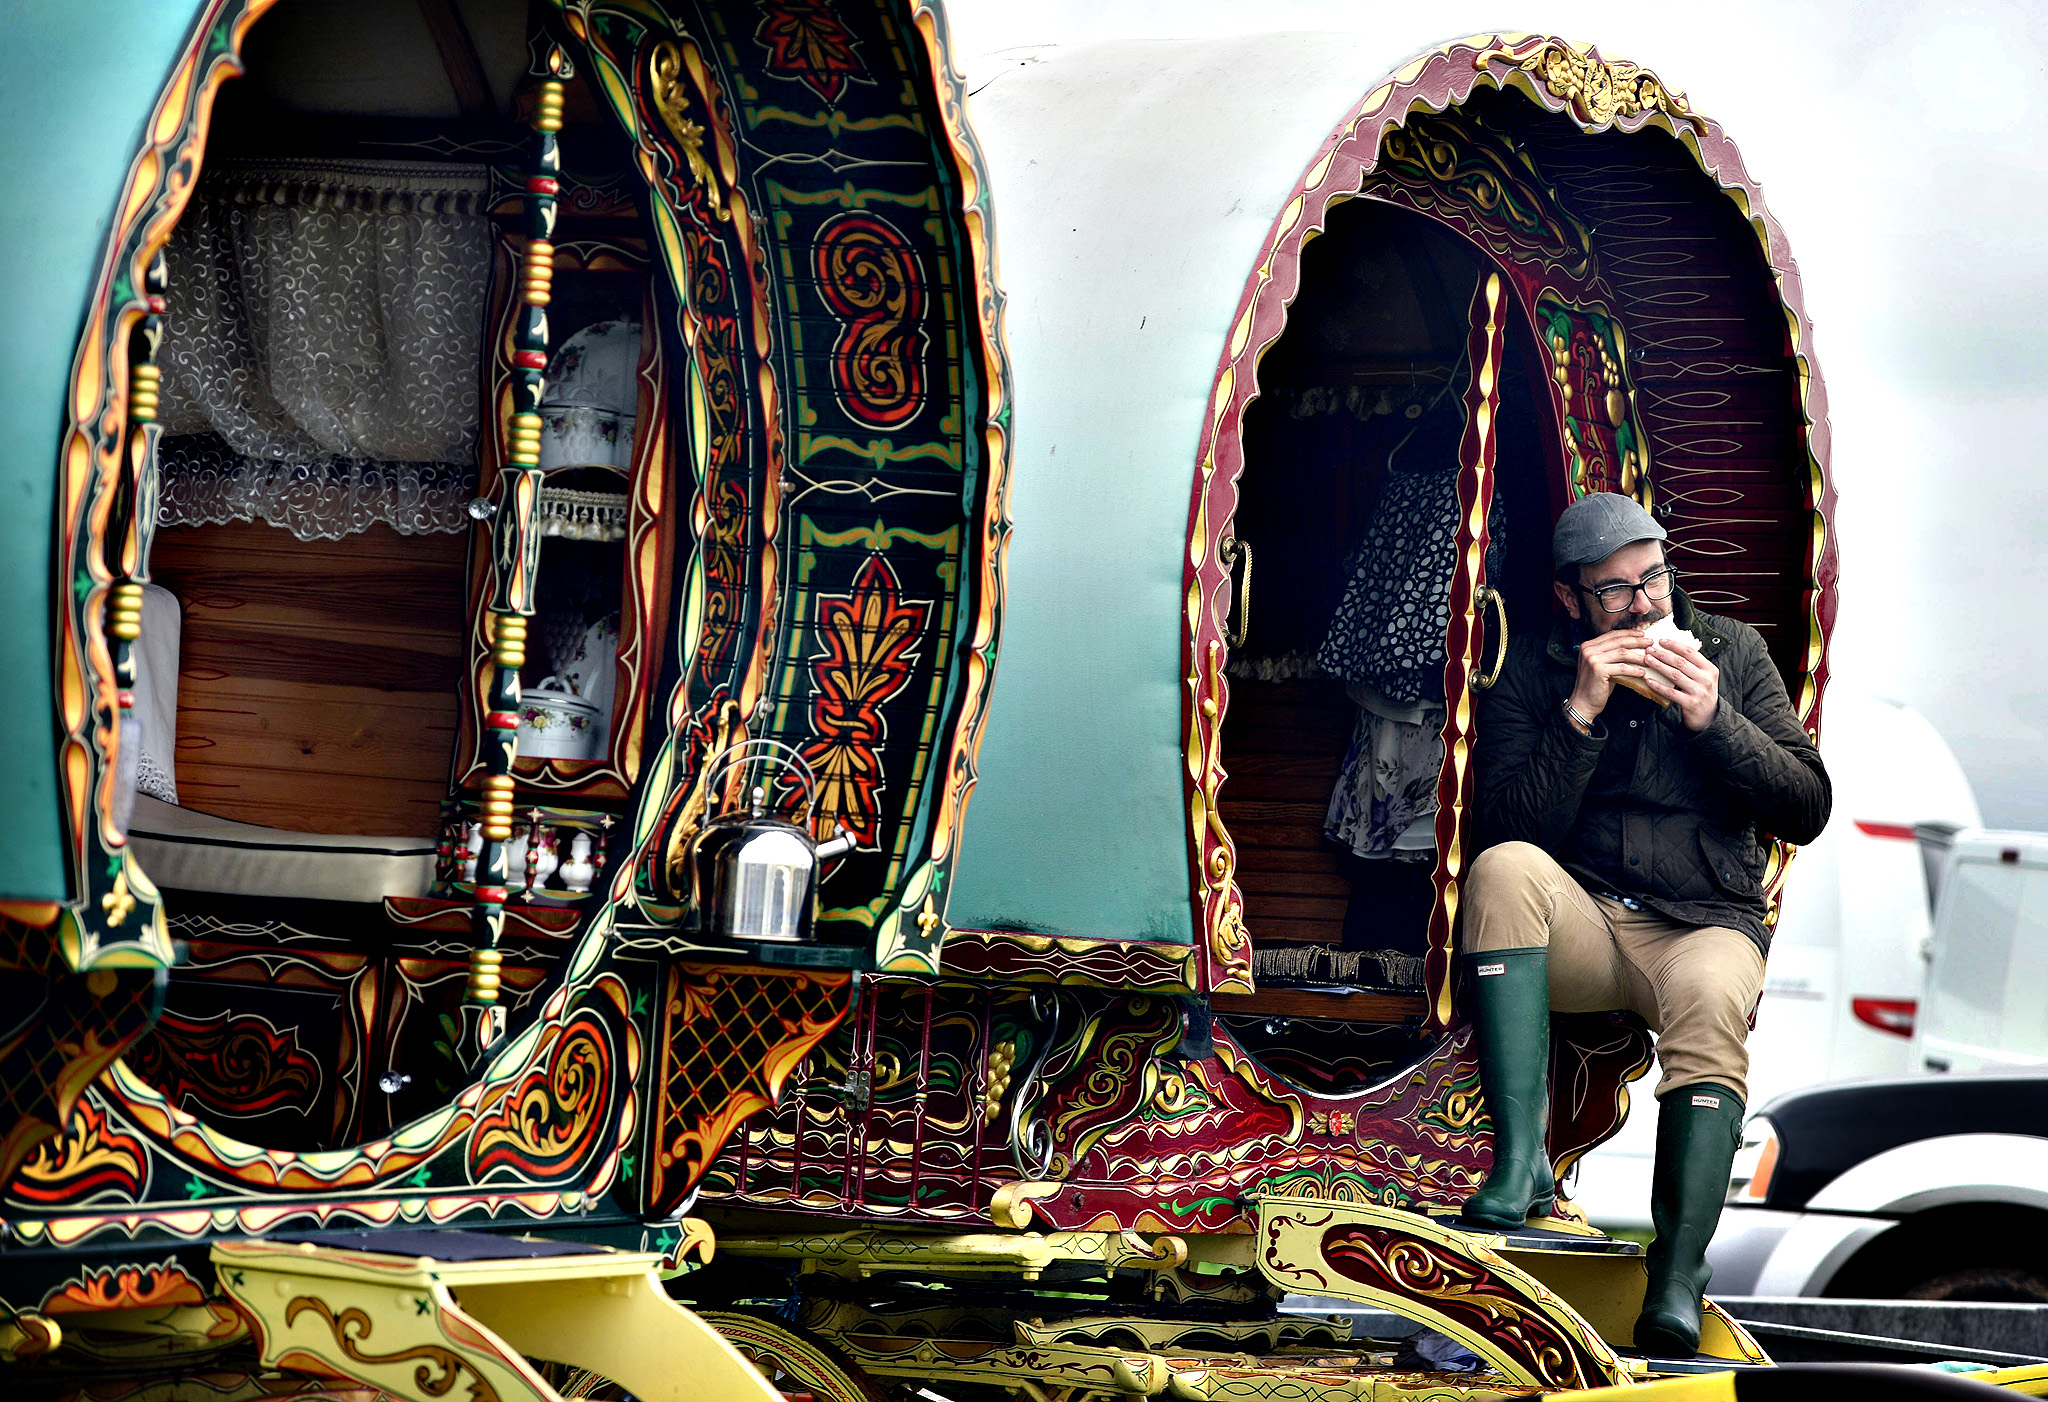 A man sits in his caravan during the Appleby Horse Fair on June 5, 2014 in Appleby, England. The Appleby Horse Fair has existed under the protection of a charter granted by James II since 1685 and is one of the key gathering points for the Romany, gypsy and traveling community. The fair is attended by about 5,000 travellers who come to buy and sell horses. The animals are washed and groomed before being ridden at high speed along the 'mad mile' for the viewing of potential buyers.